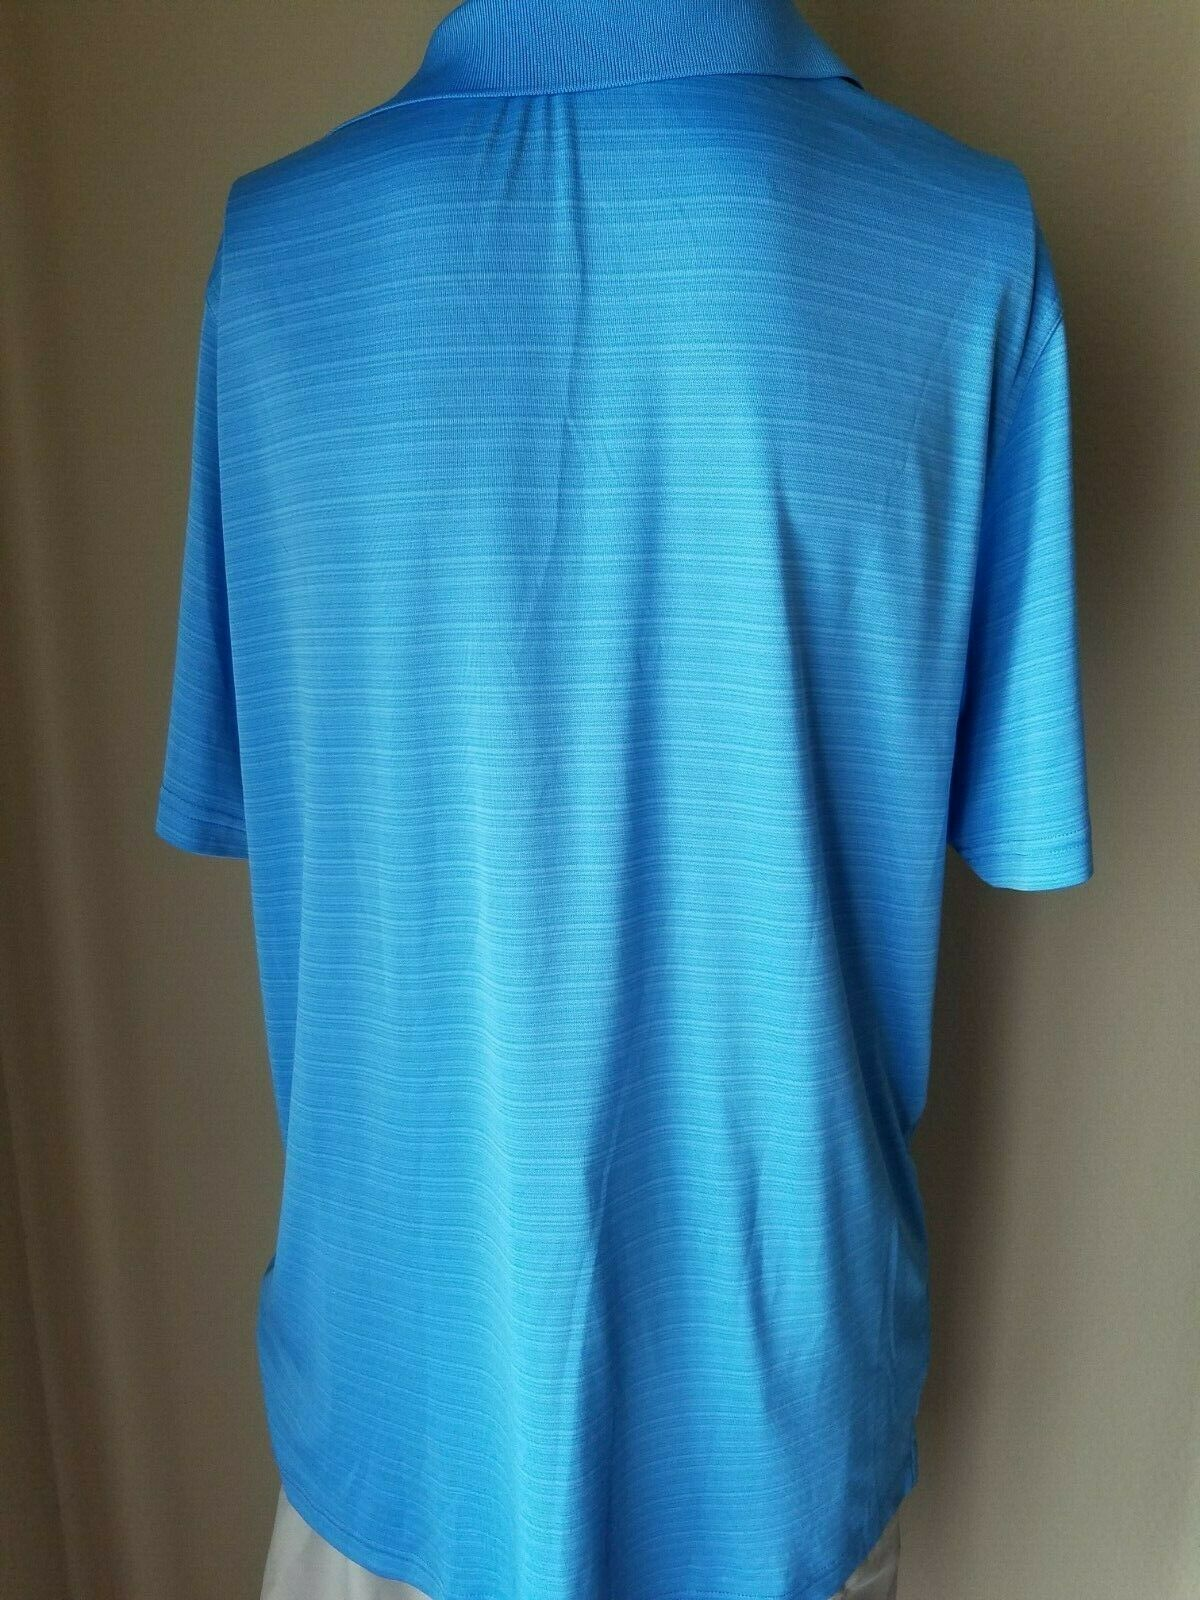 3 Herren Polo Golf Hemden Ashworth Greg Norman Bobby Jones Blau Kurzarm XL